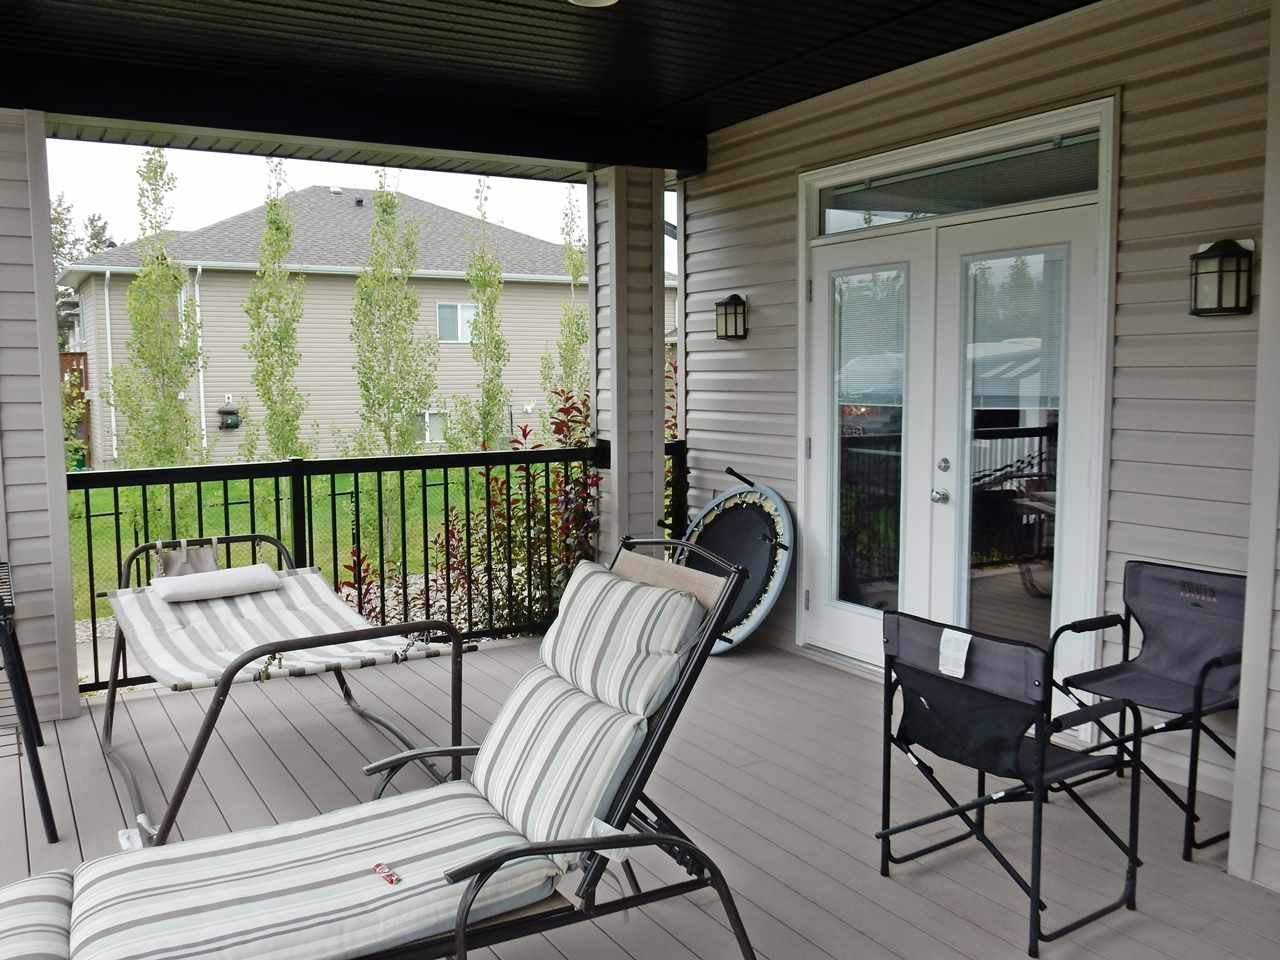 Photo 15: 3725 47 Street: Gibbons House for sale : MLS® # E4064715